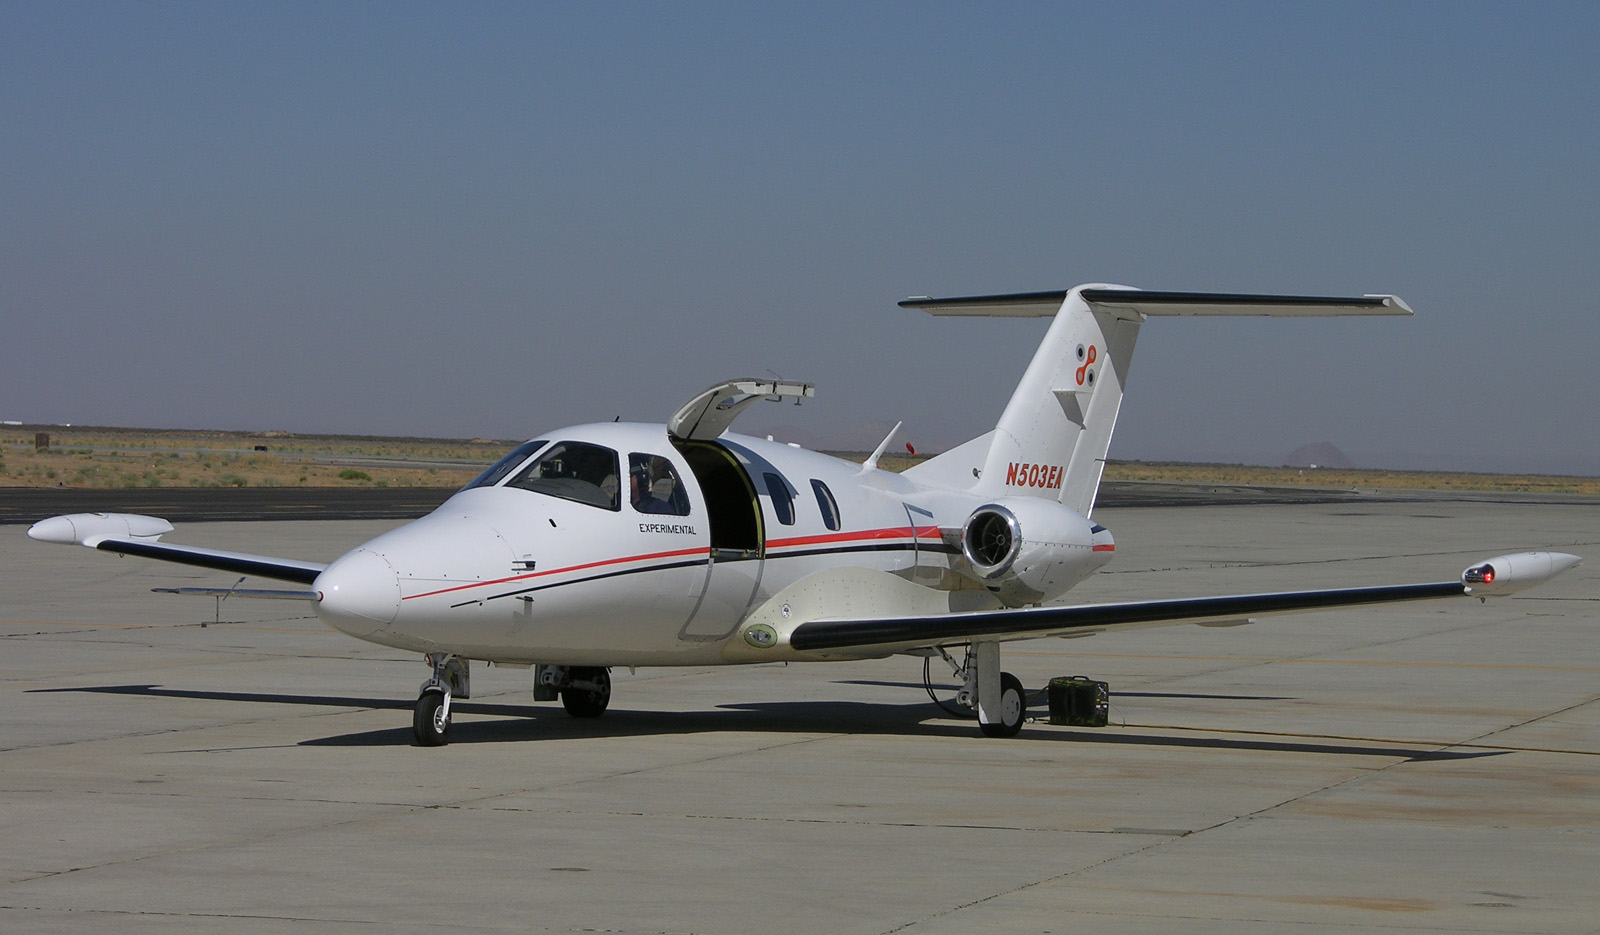 Eclipse 500 A personal JetEclipse Jet